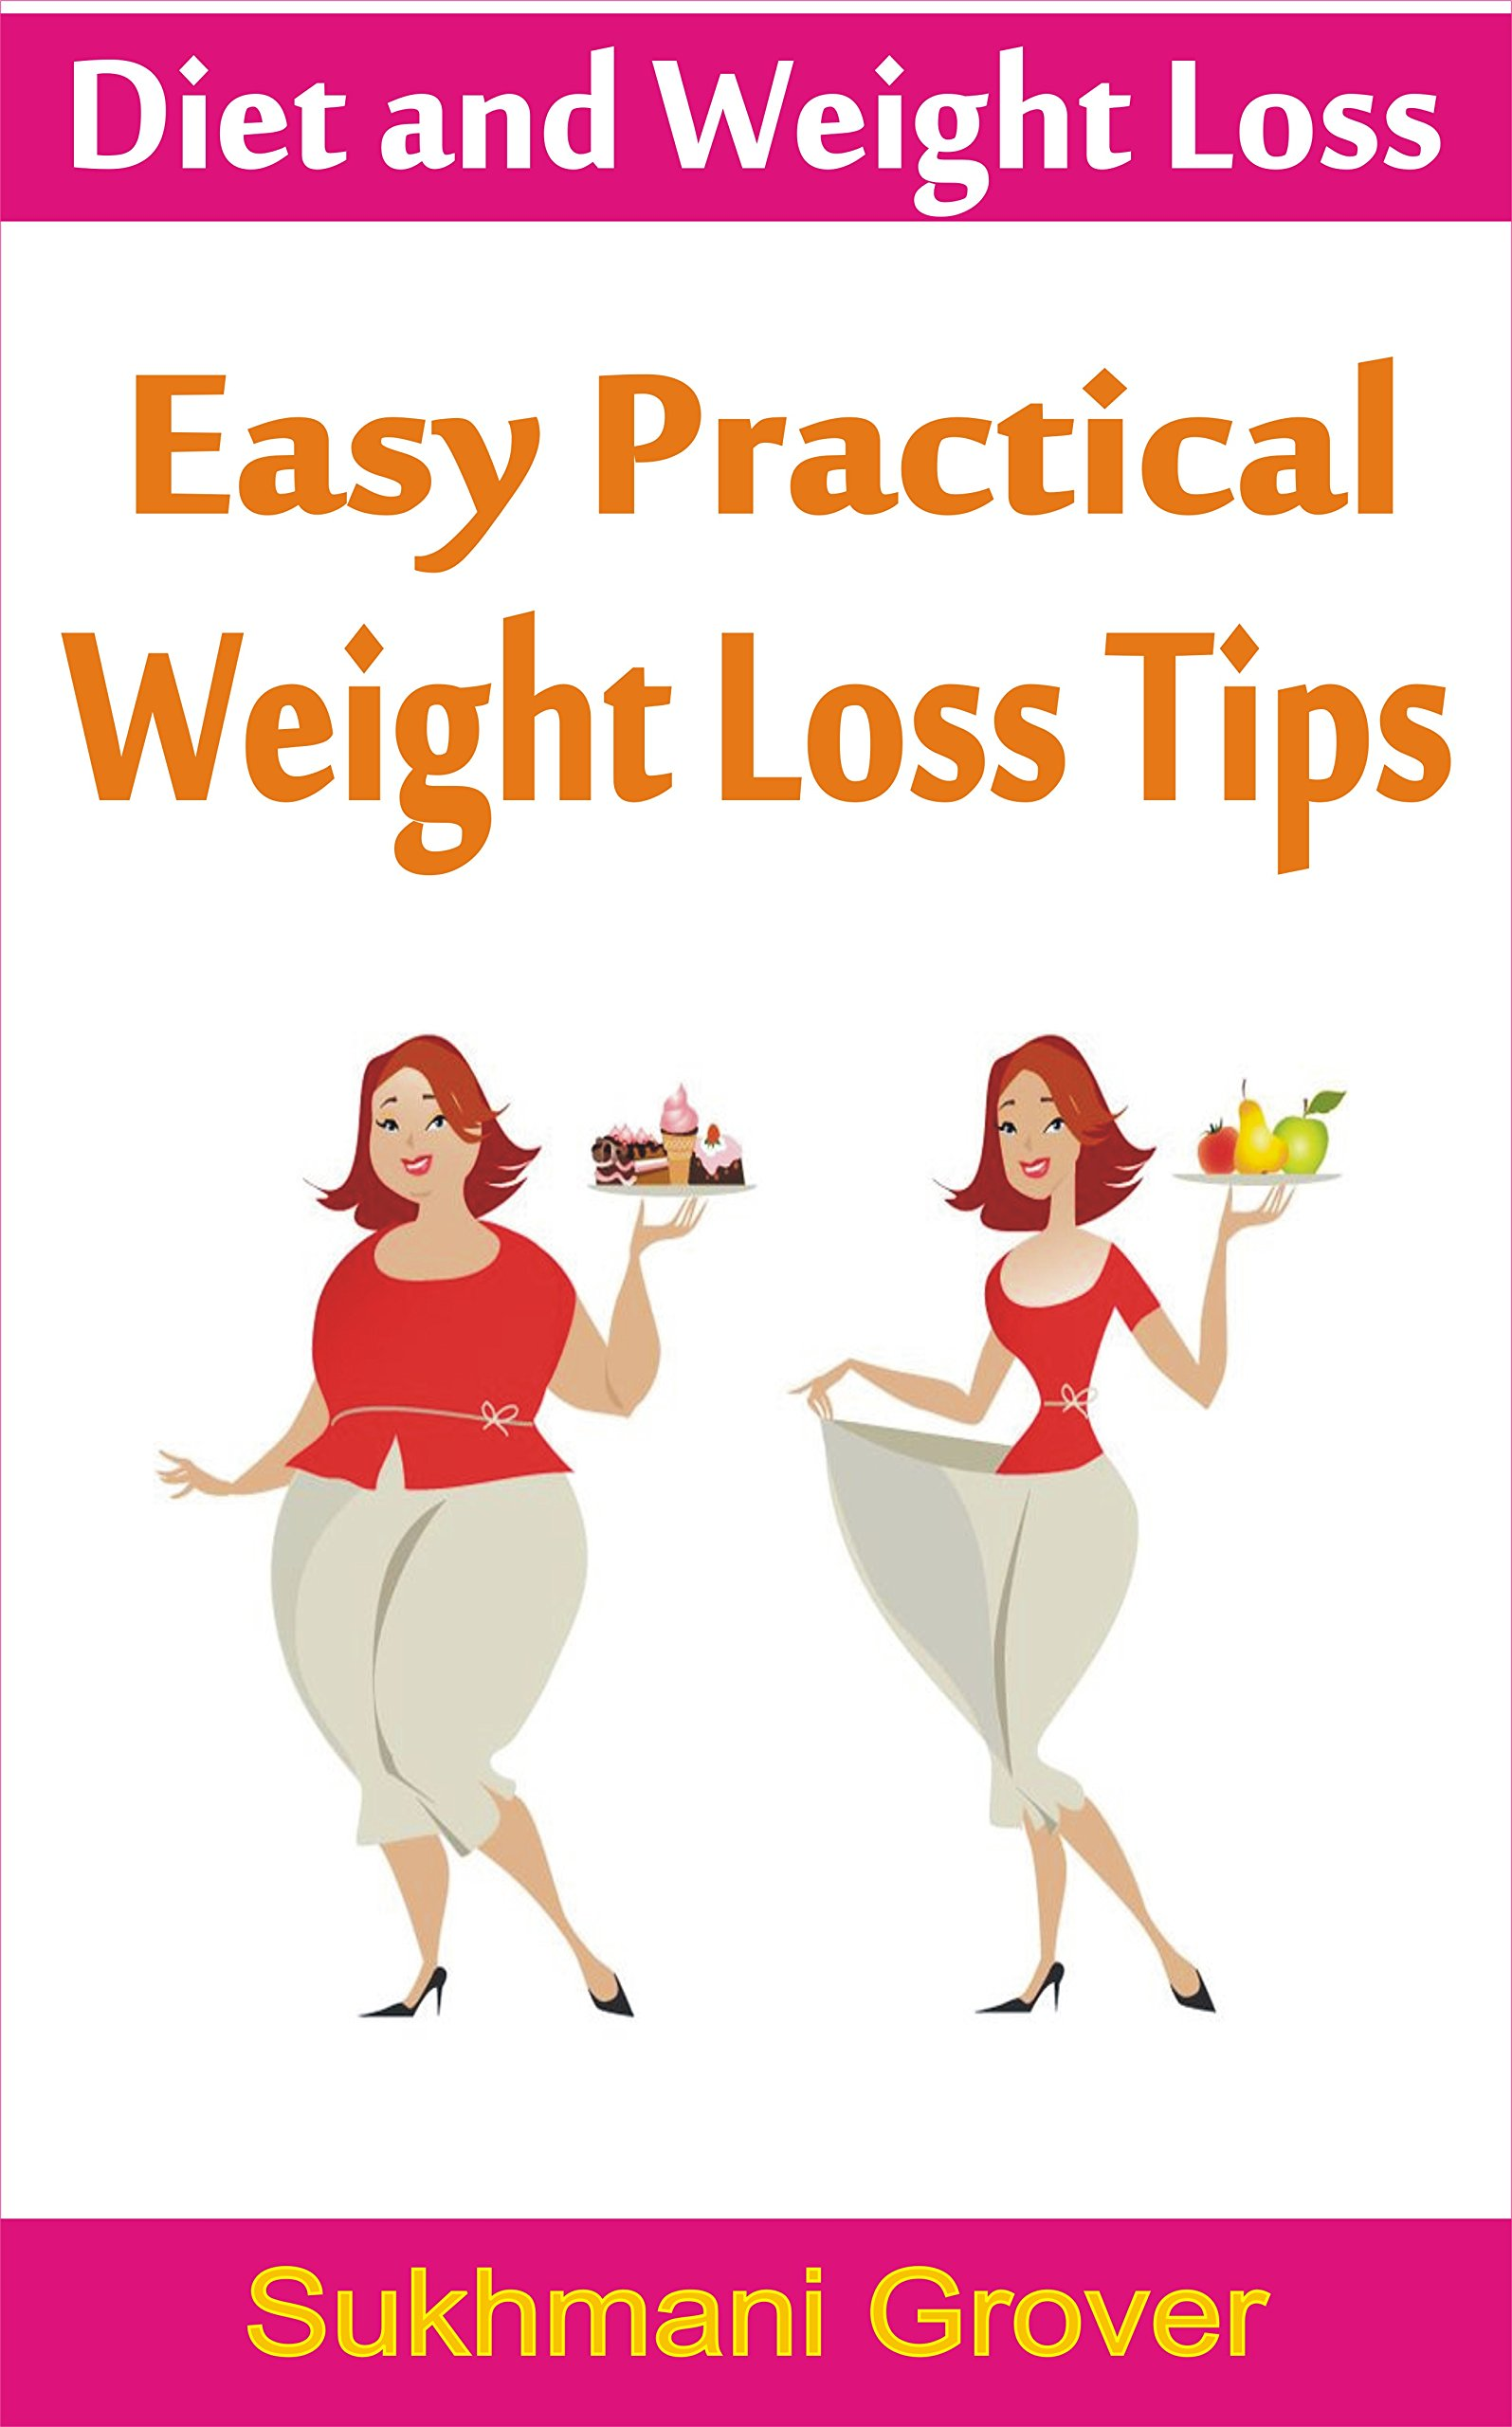 Buy Lose to tips weight fast and easily picture trends